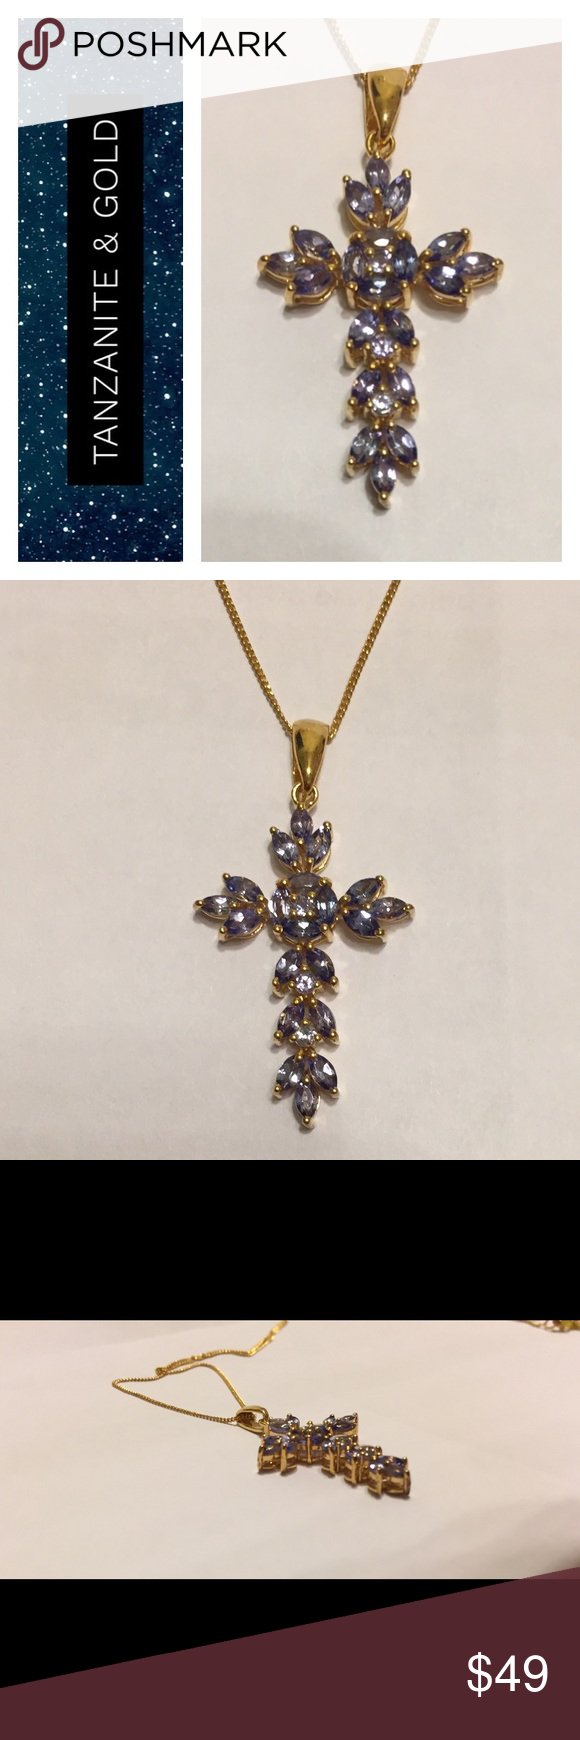 Tanzanite cross pendant with chain 925 this is for a tanzanite tanzanite cross pendant with chain 925 this is for a tanzanite cross pendant with chain aloadofball Choice Image